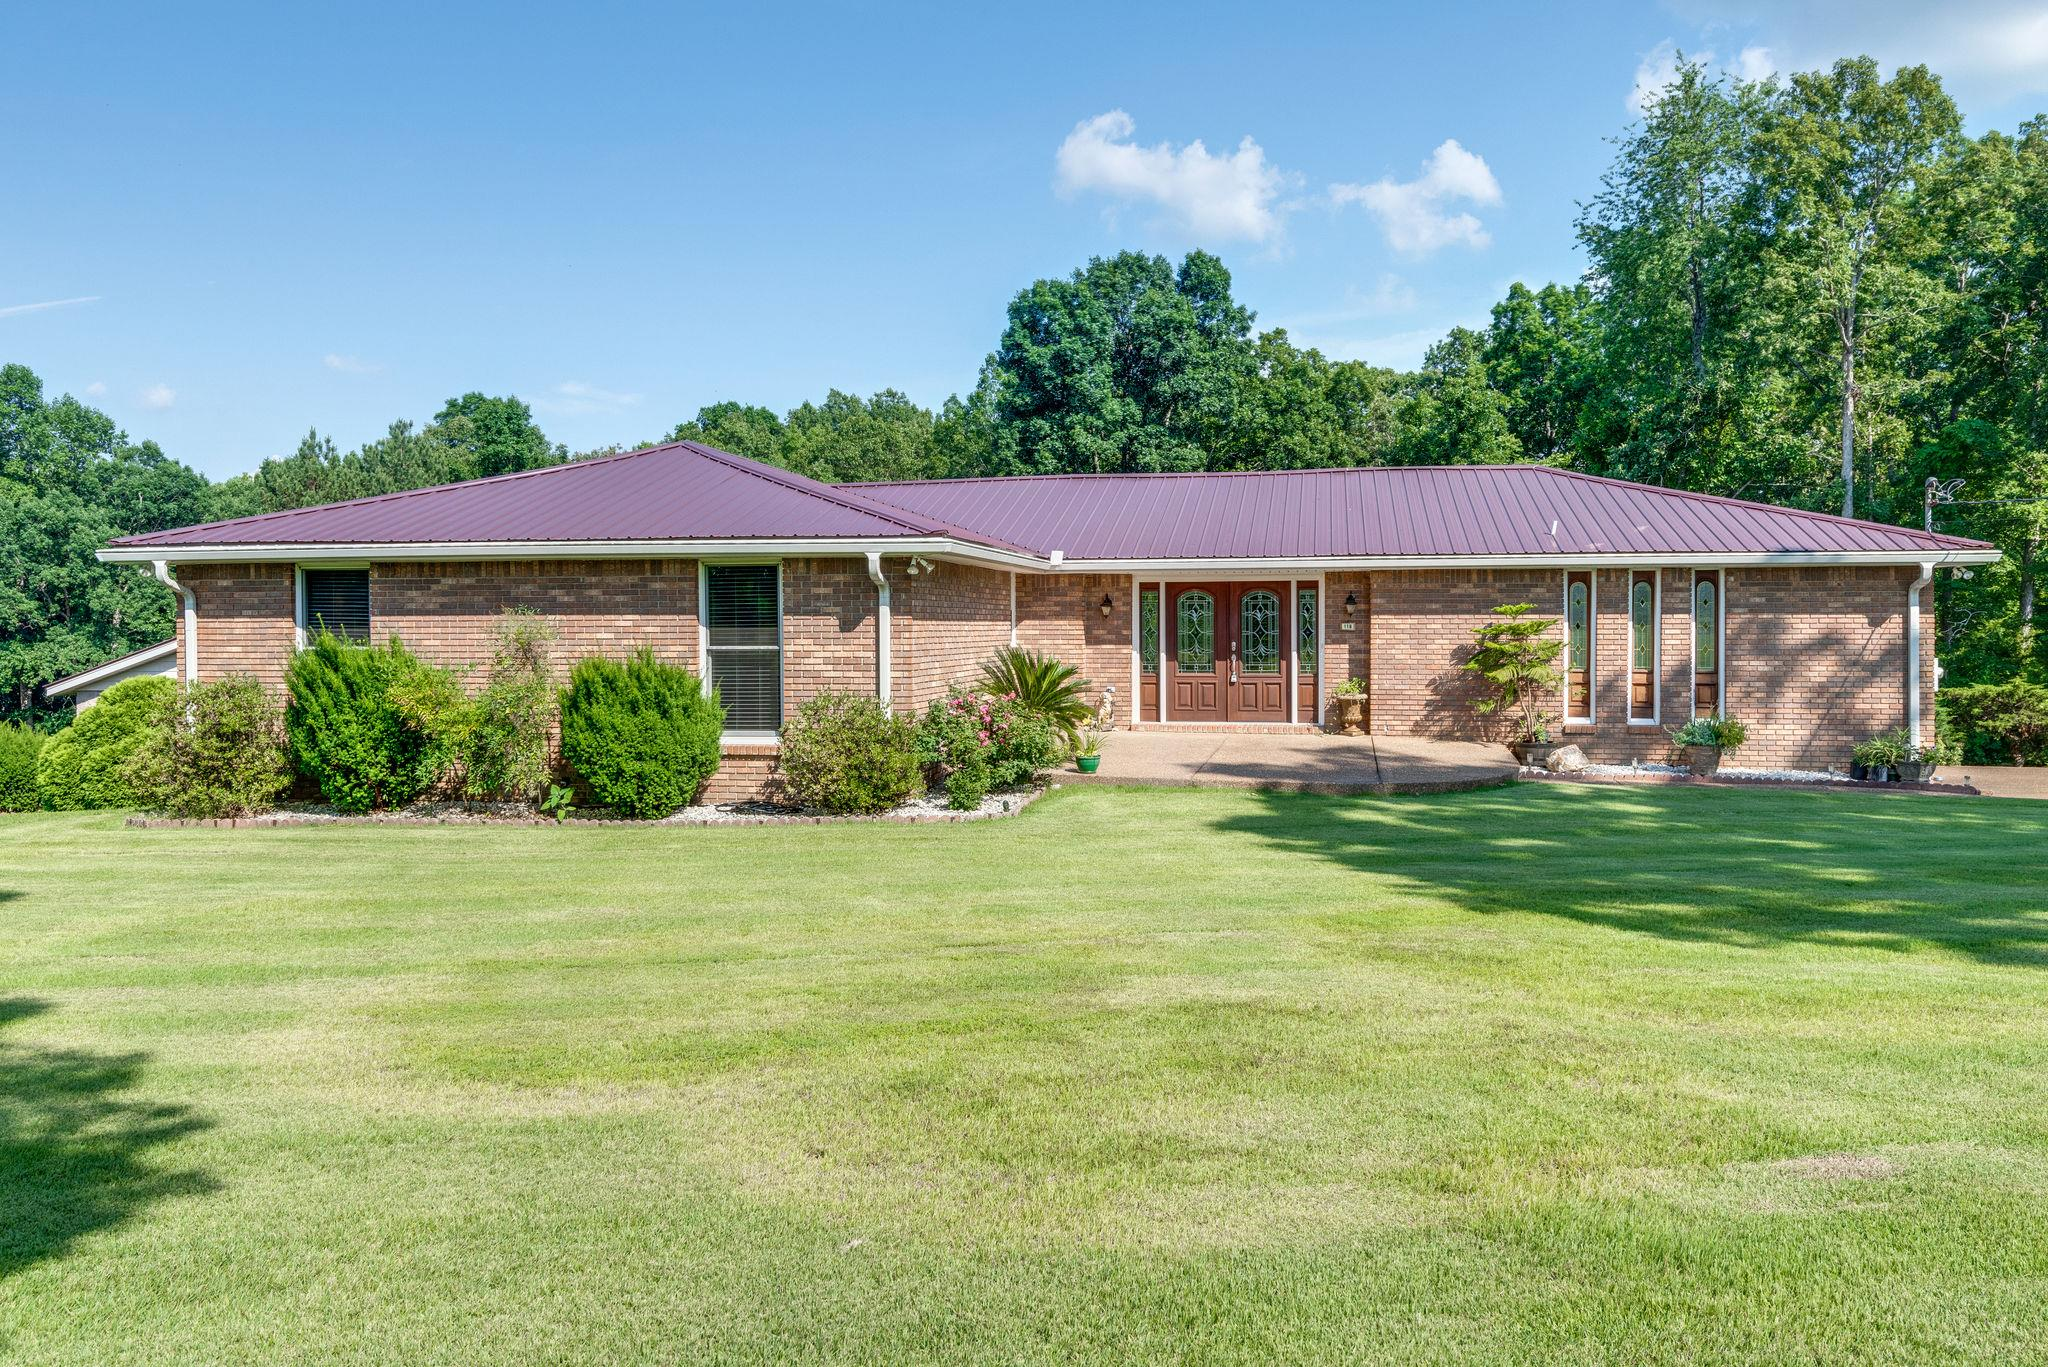 118 Sycamore Rd, Dickson, TN 37055 - Dickson, TN real estate listing